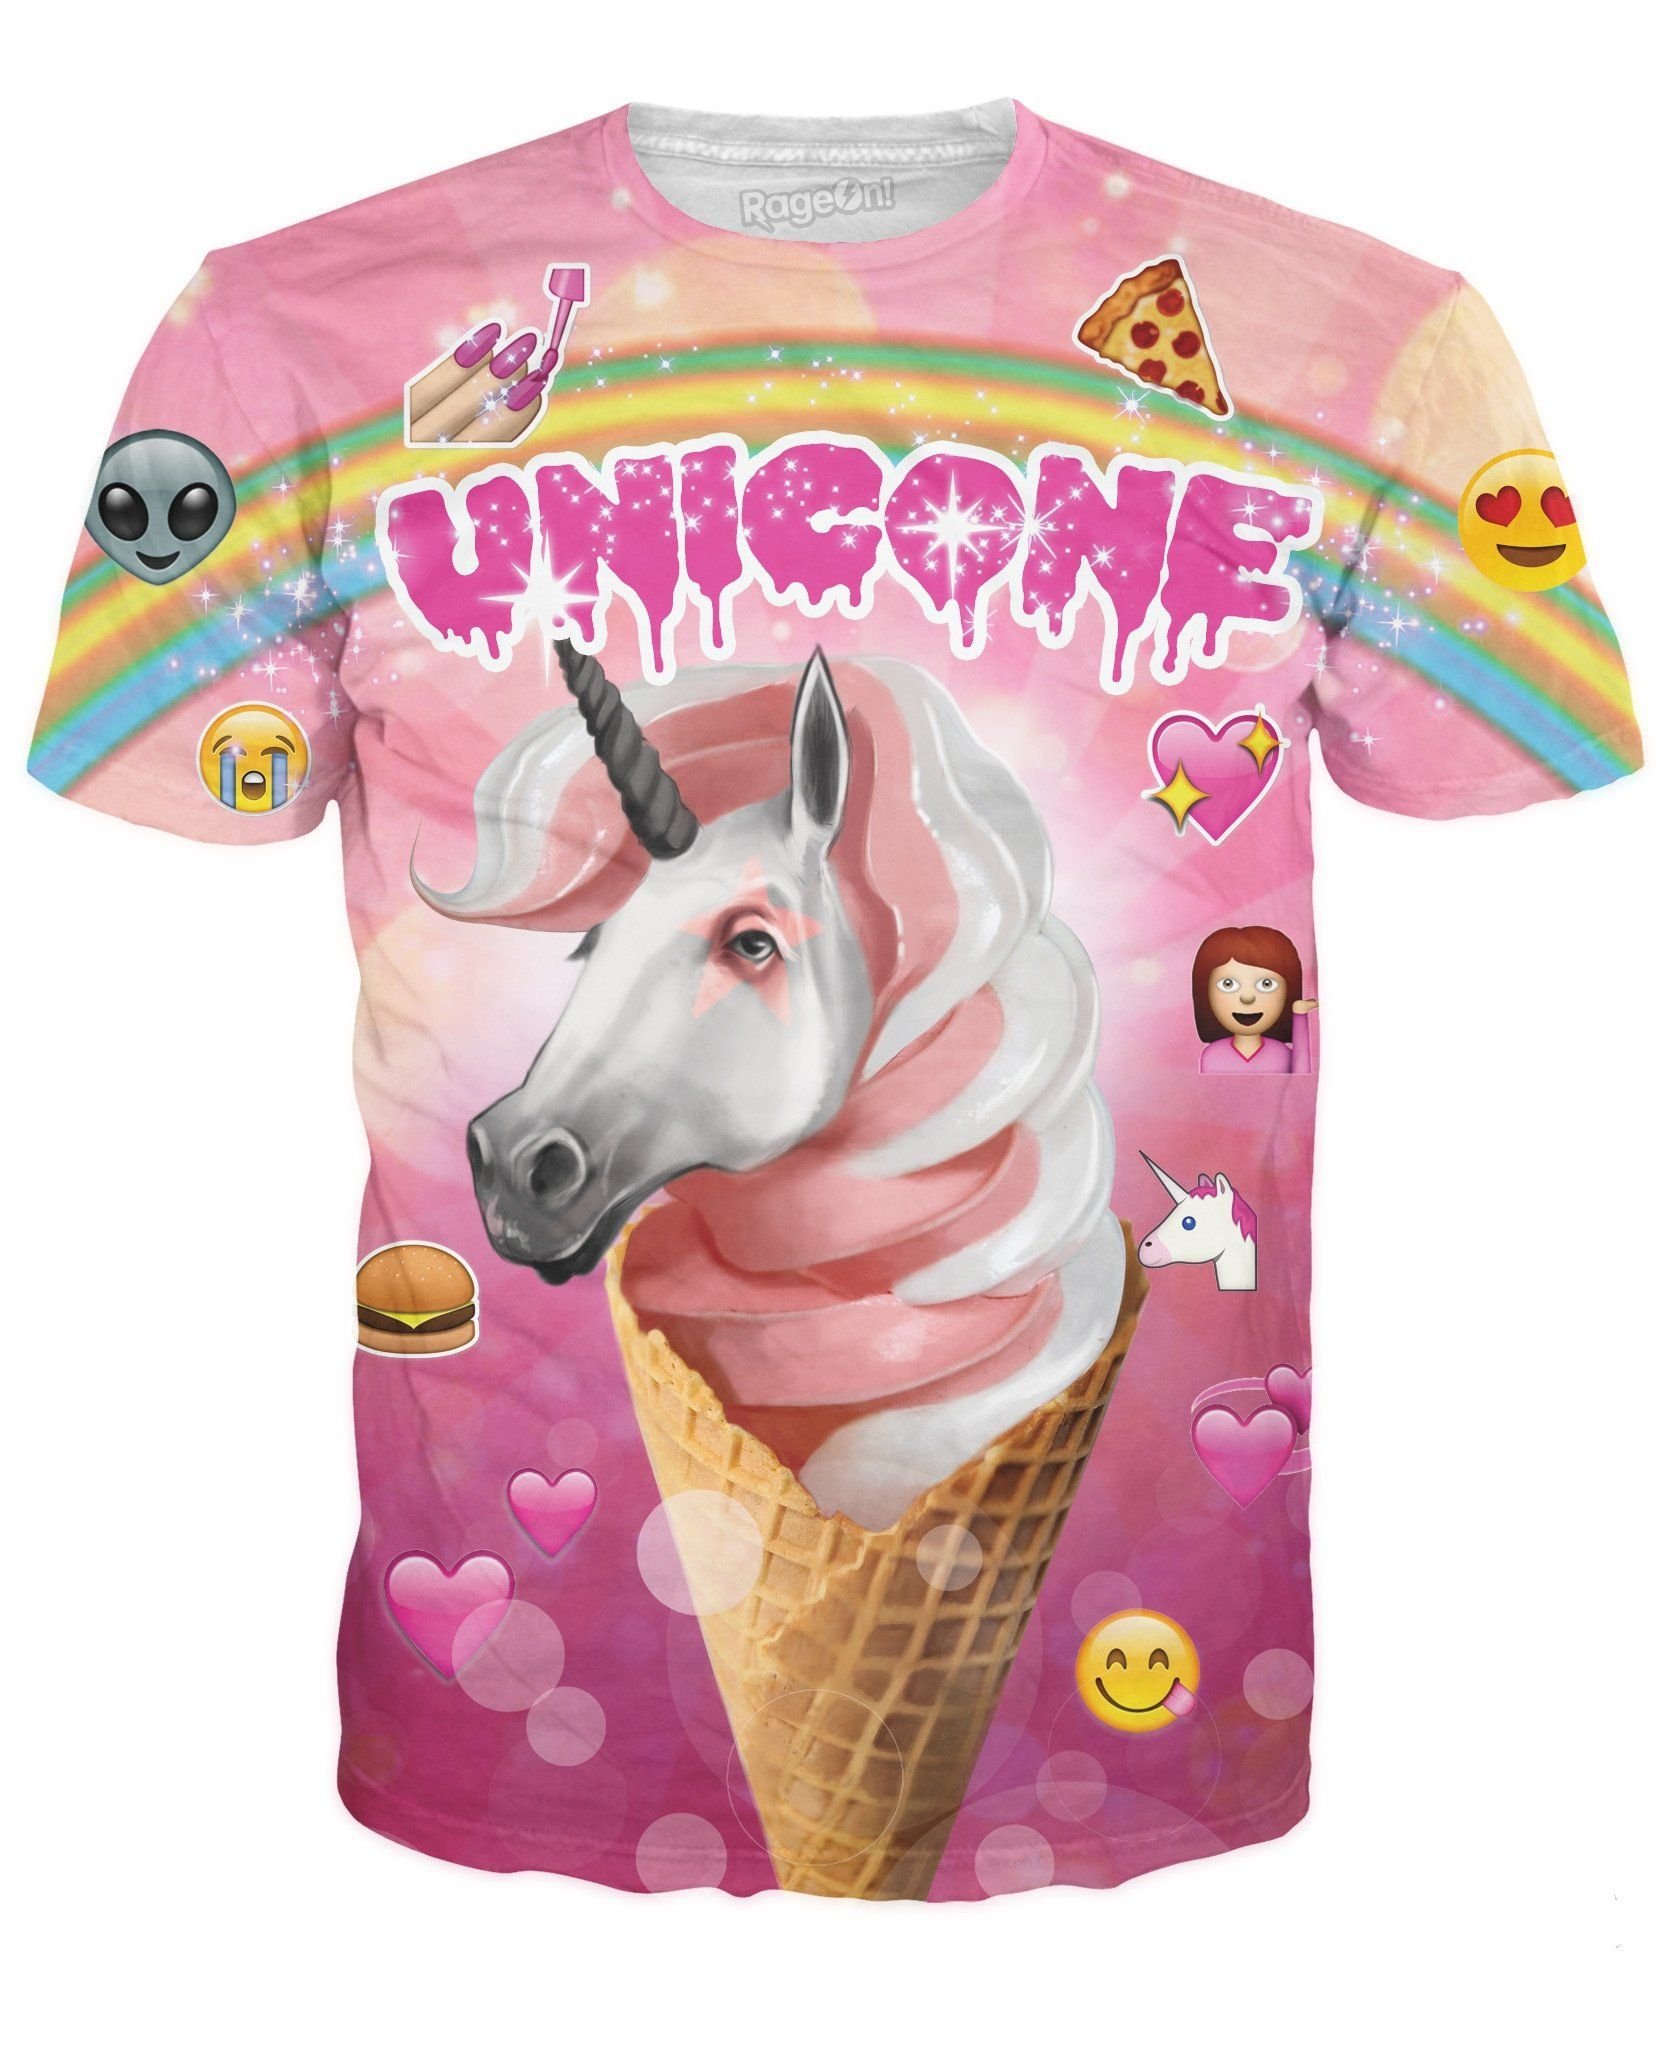 e66eb30313 Unicone T-Shirt in 2019 | T-shirts for men teens girls moms dad ...